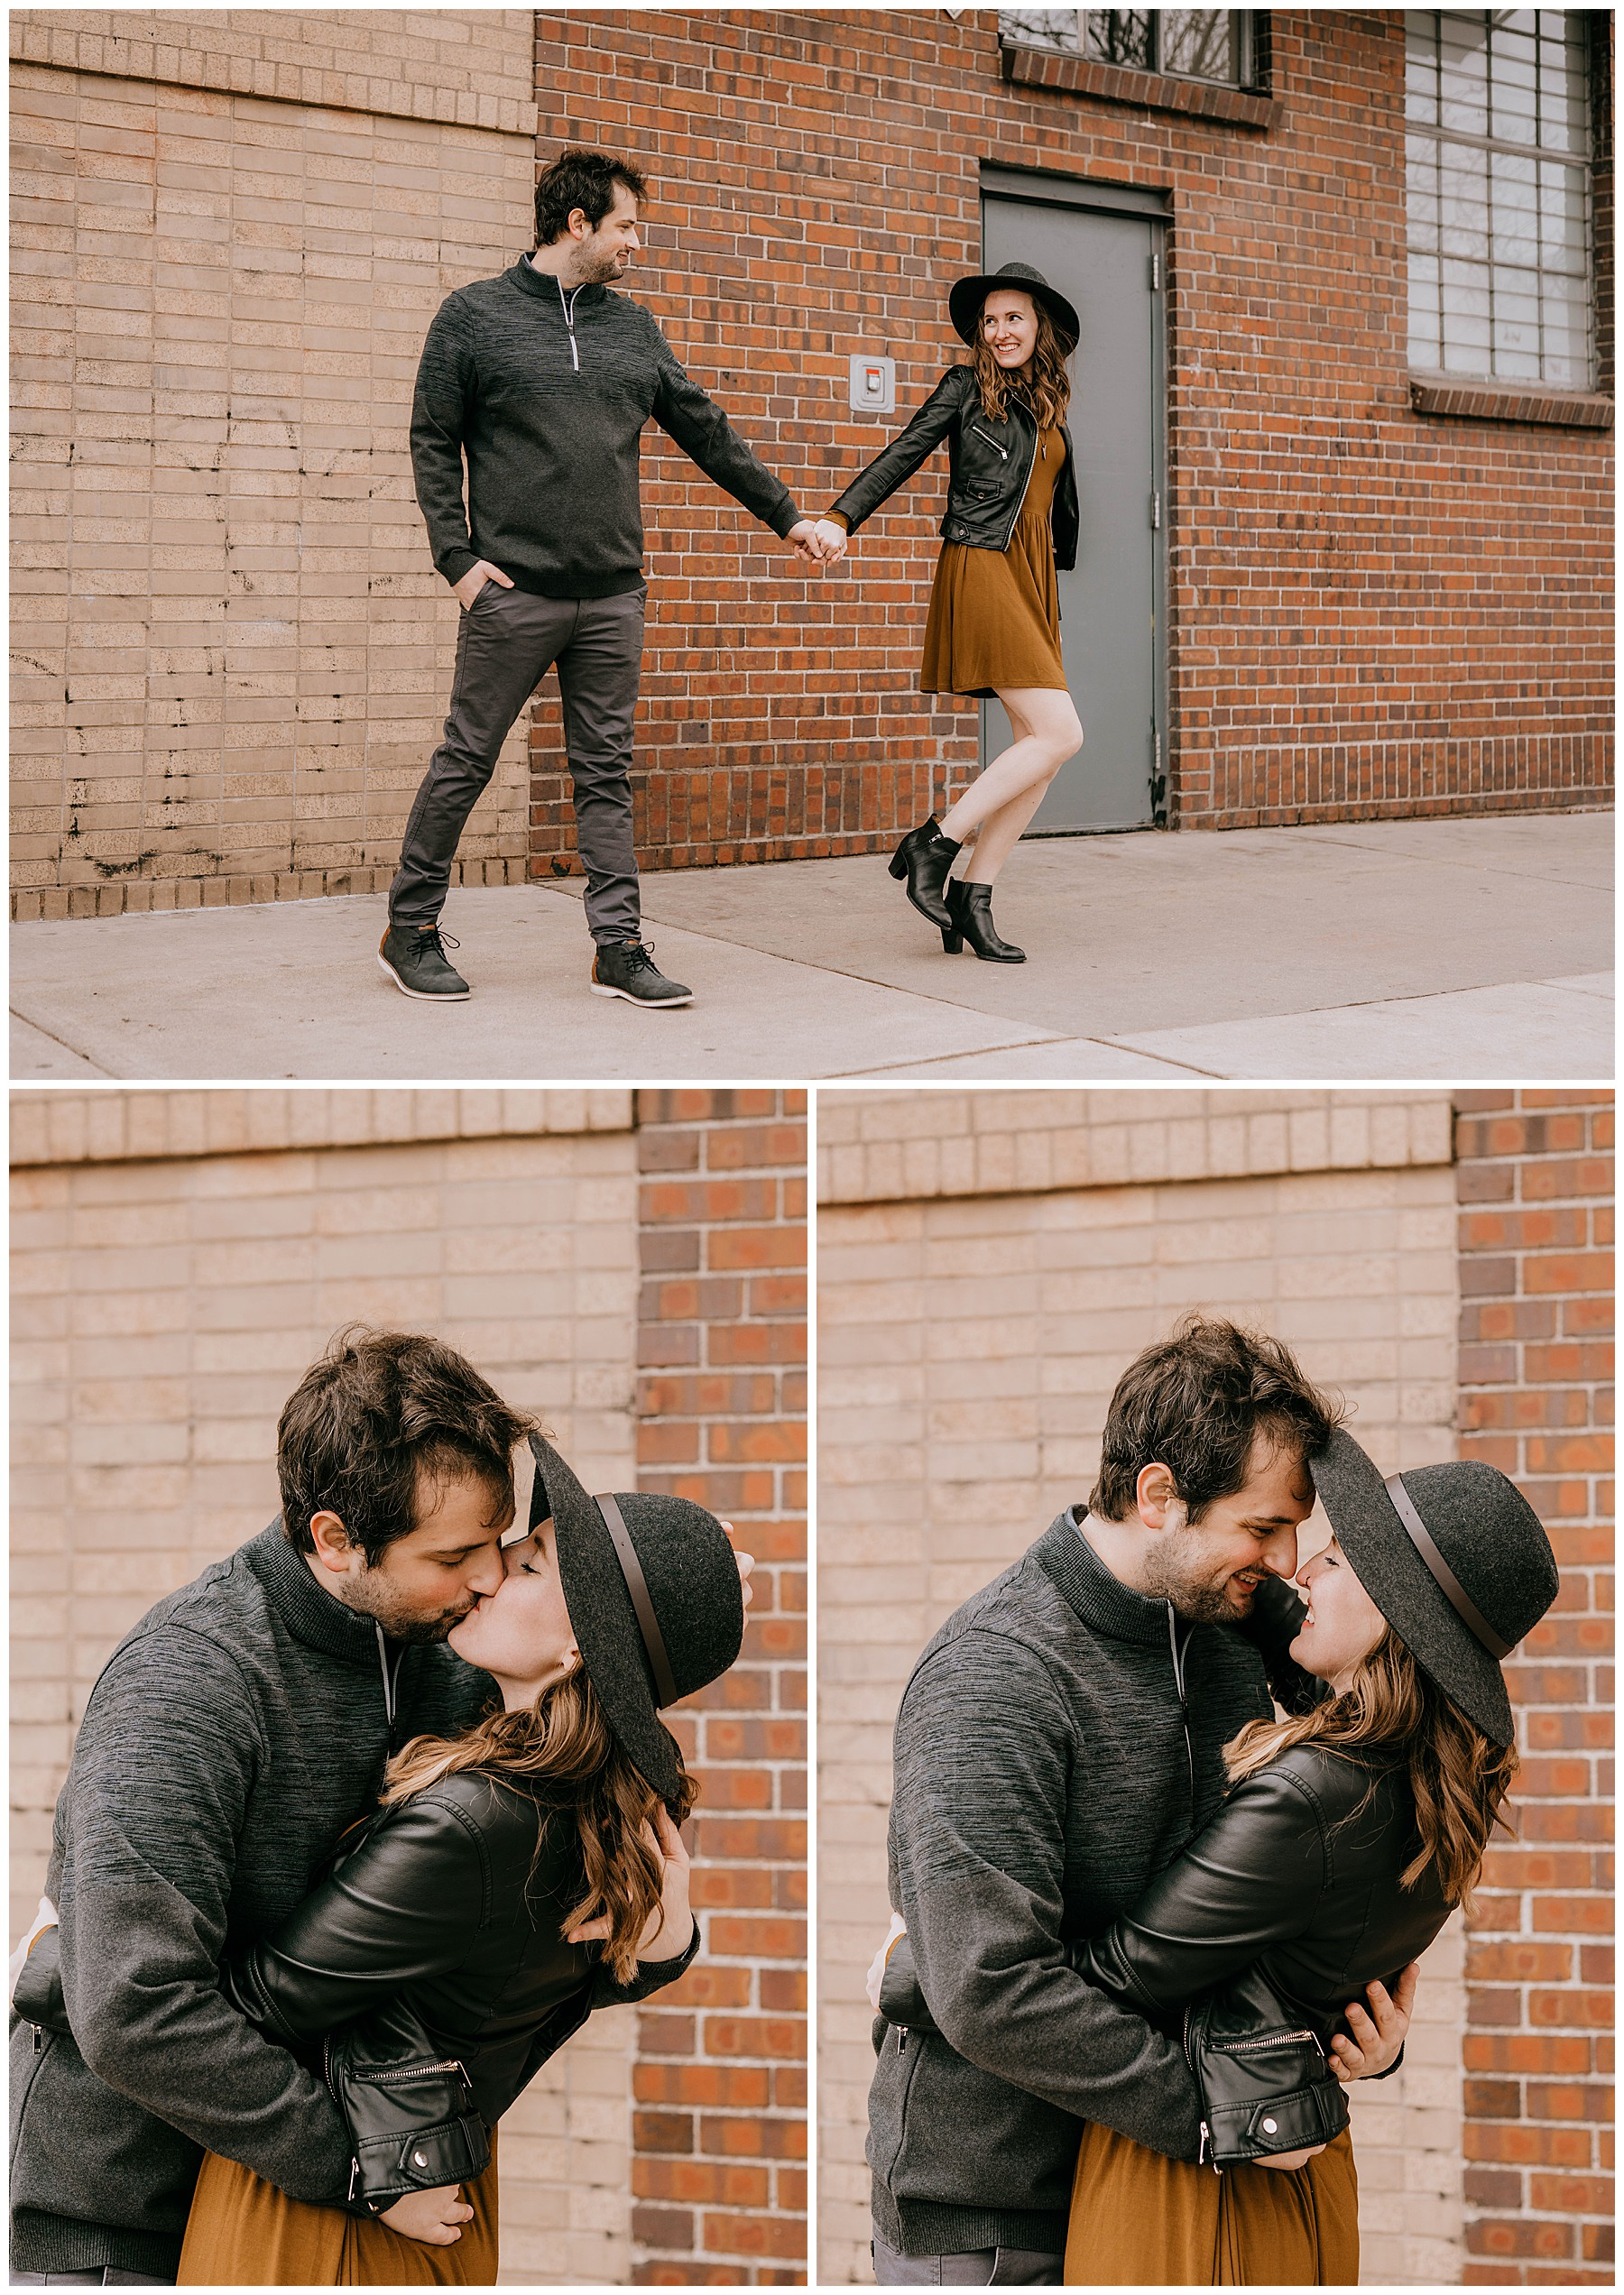 Jozie & Sam Engagement Session RiNo District Denver CO 50